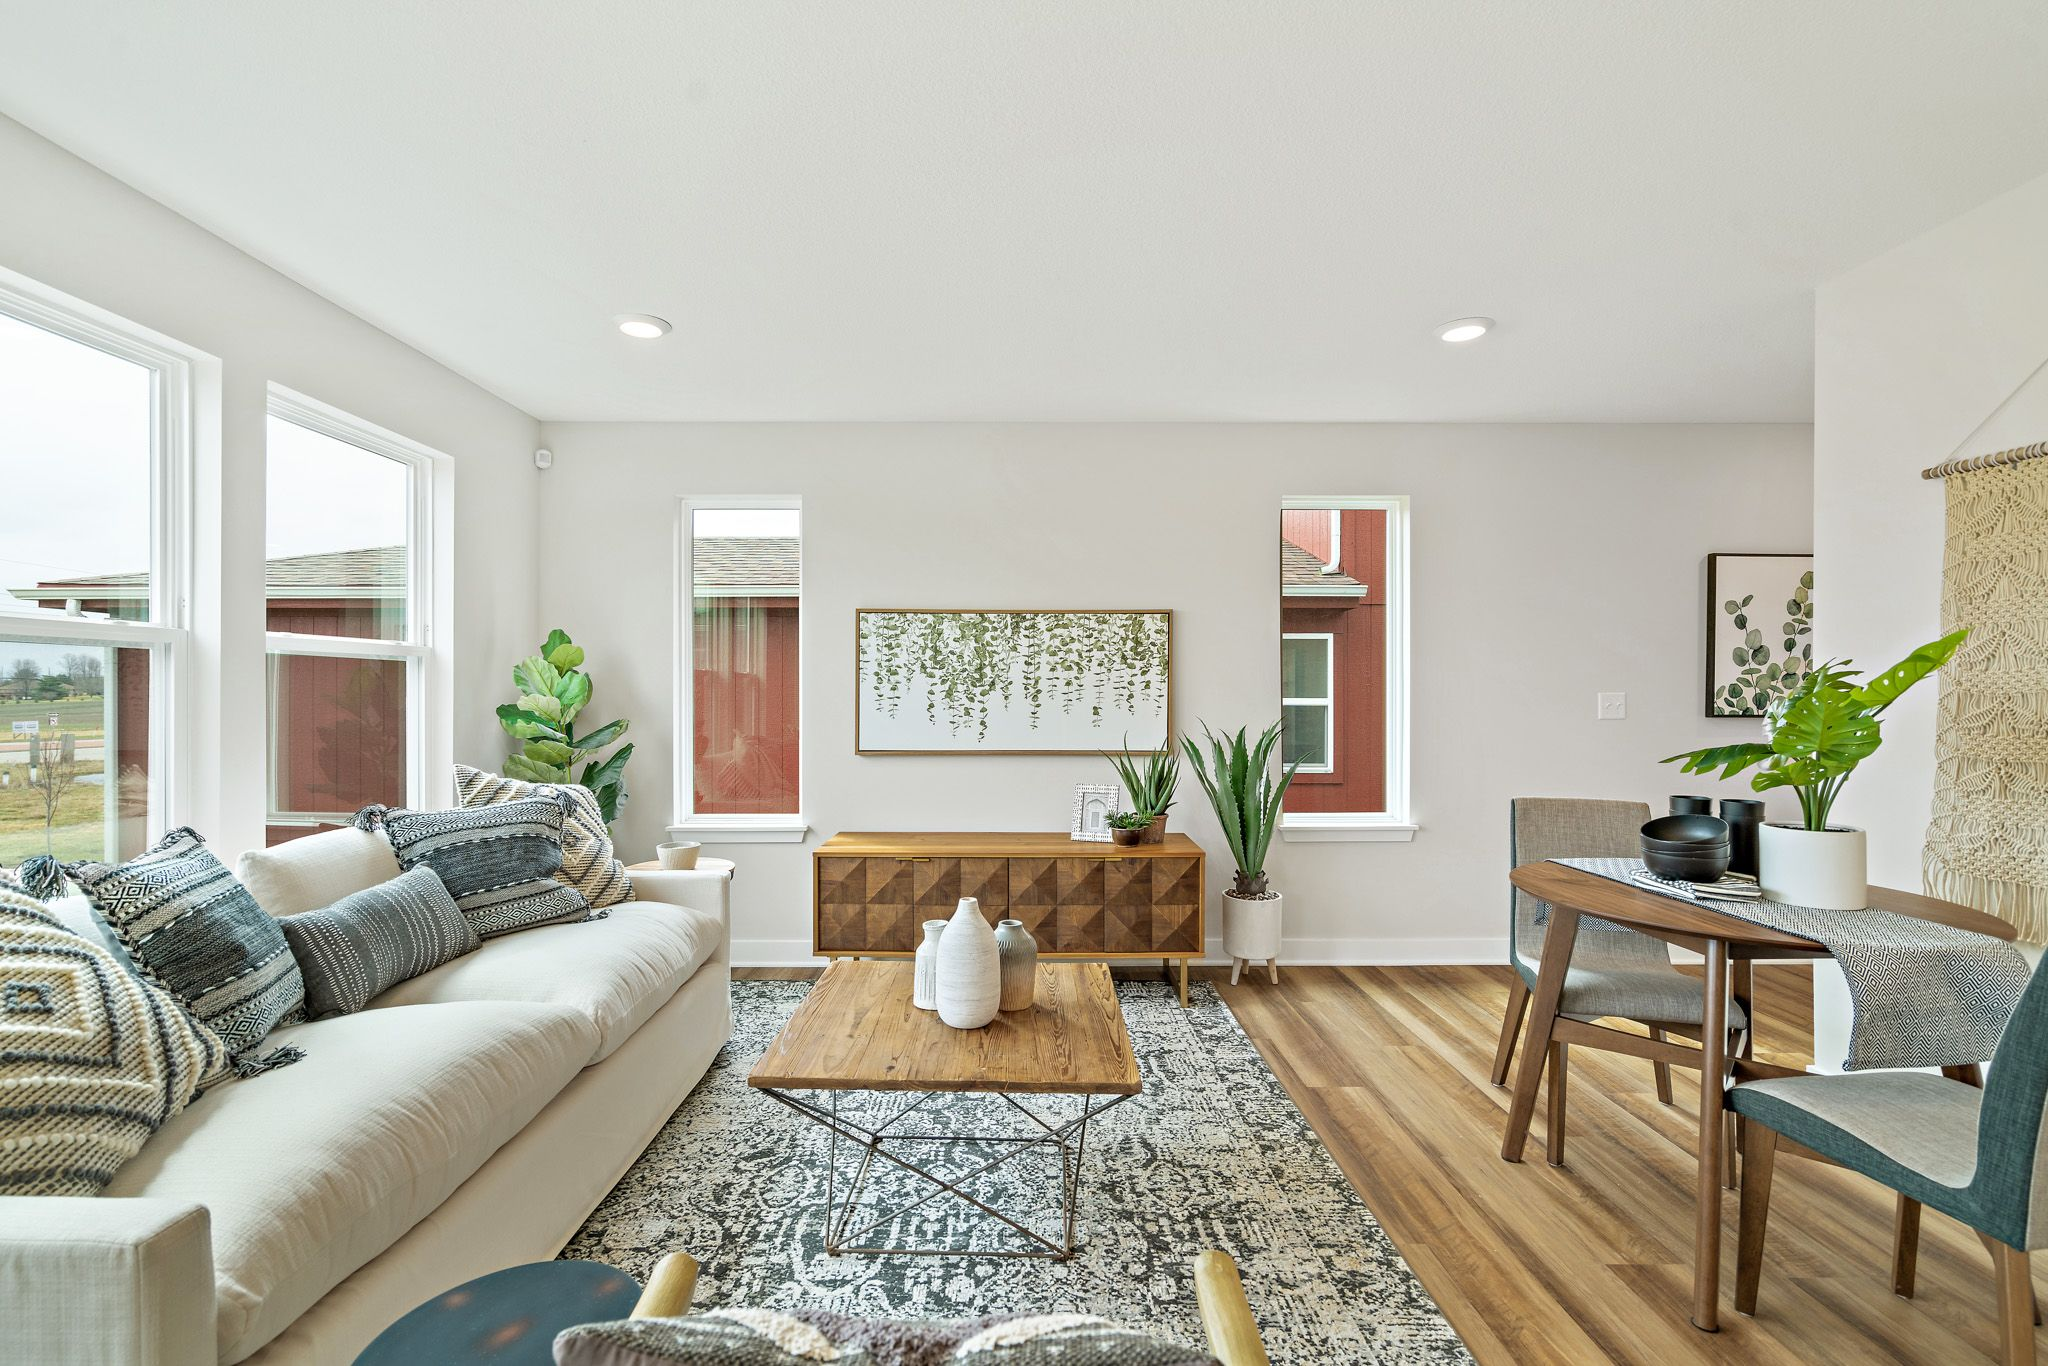 Living Area featured in the indigo - contemporary By clover & hive in Kansas City, MO